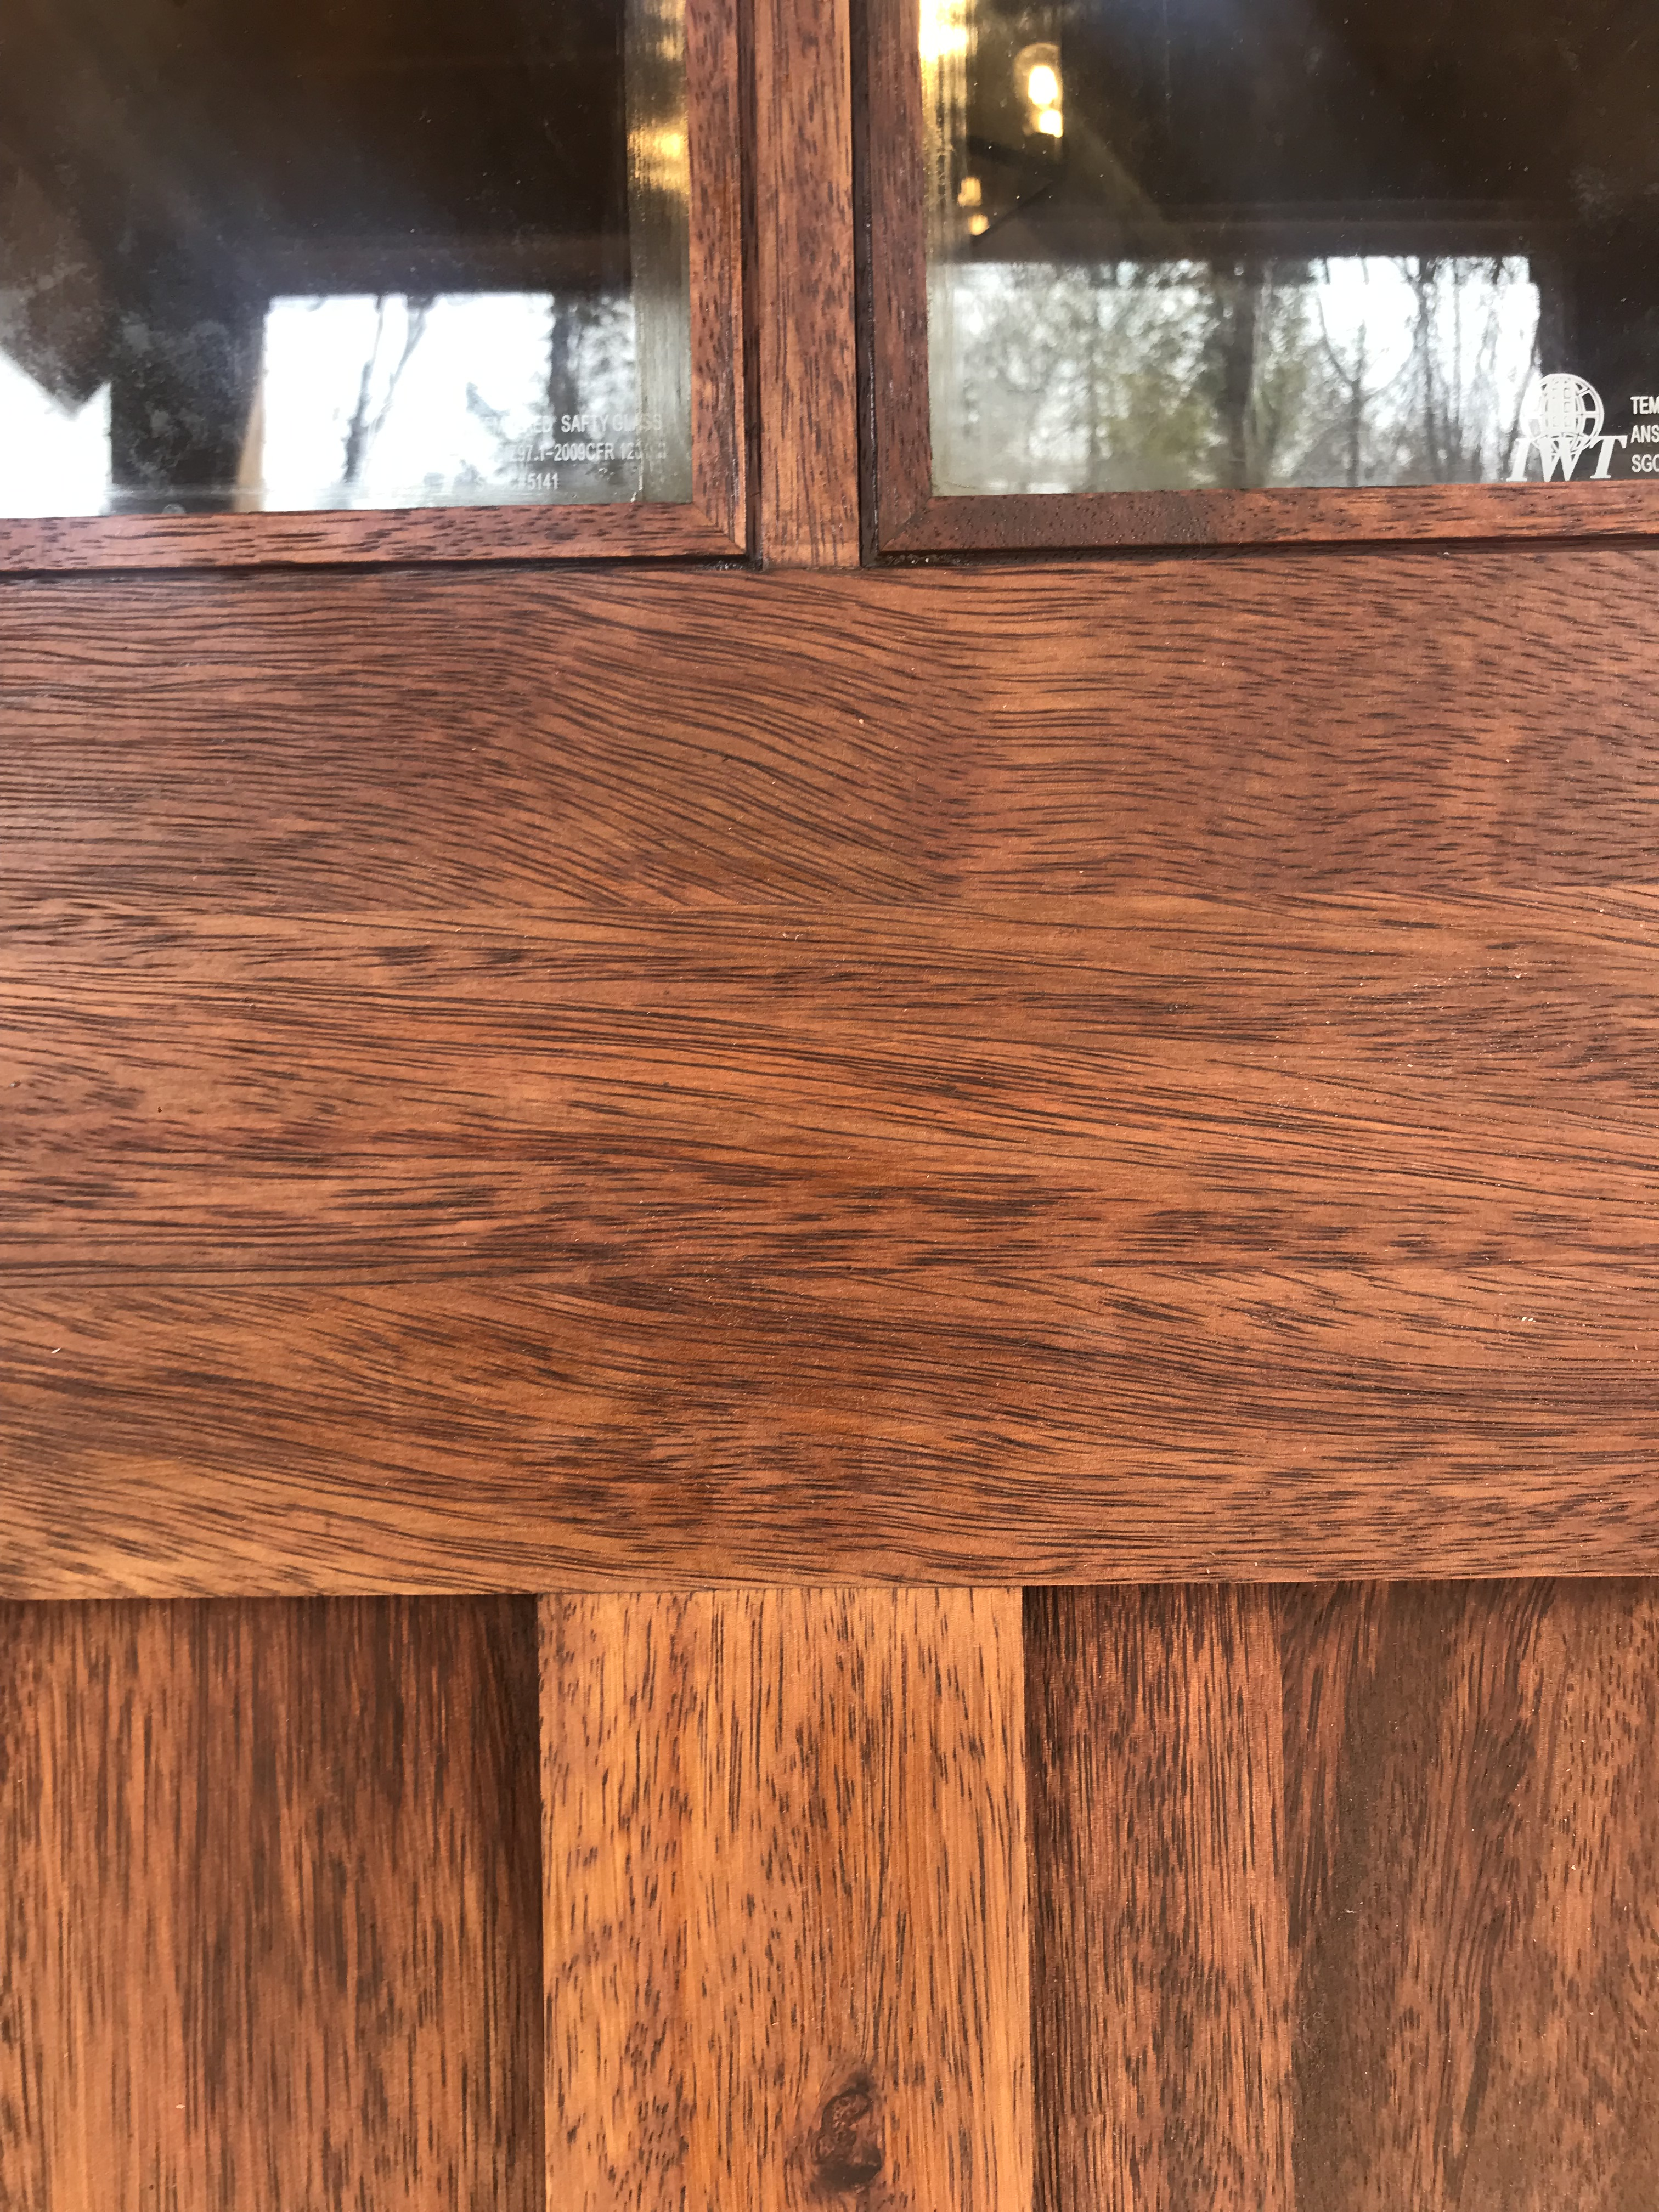 Front Door: Up close at the wood